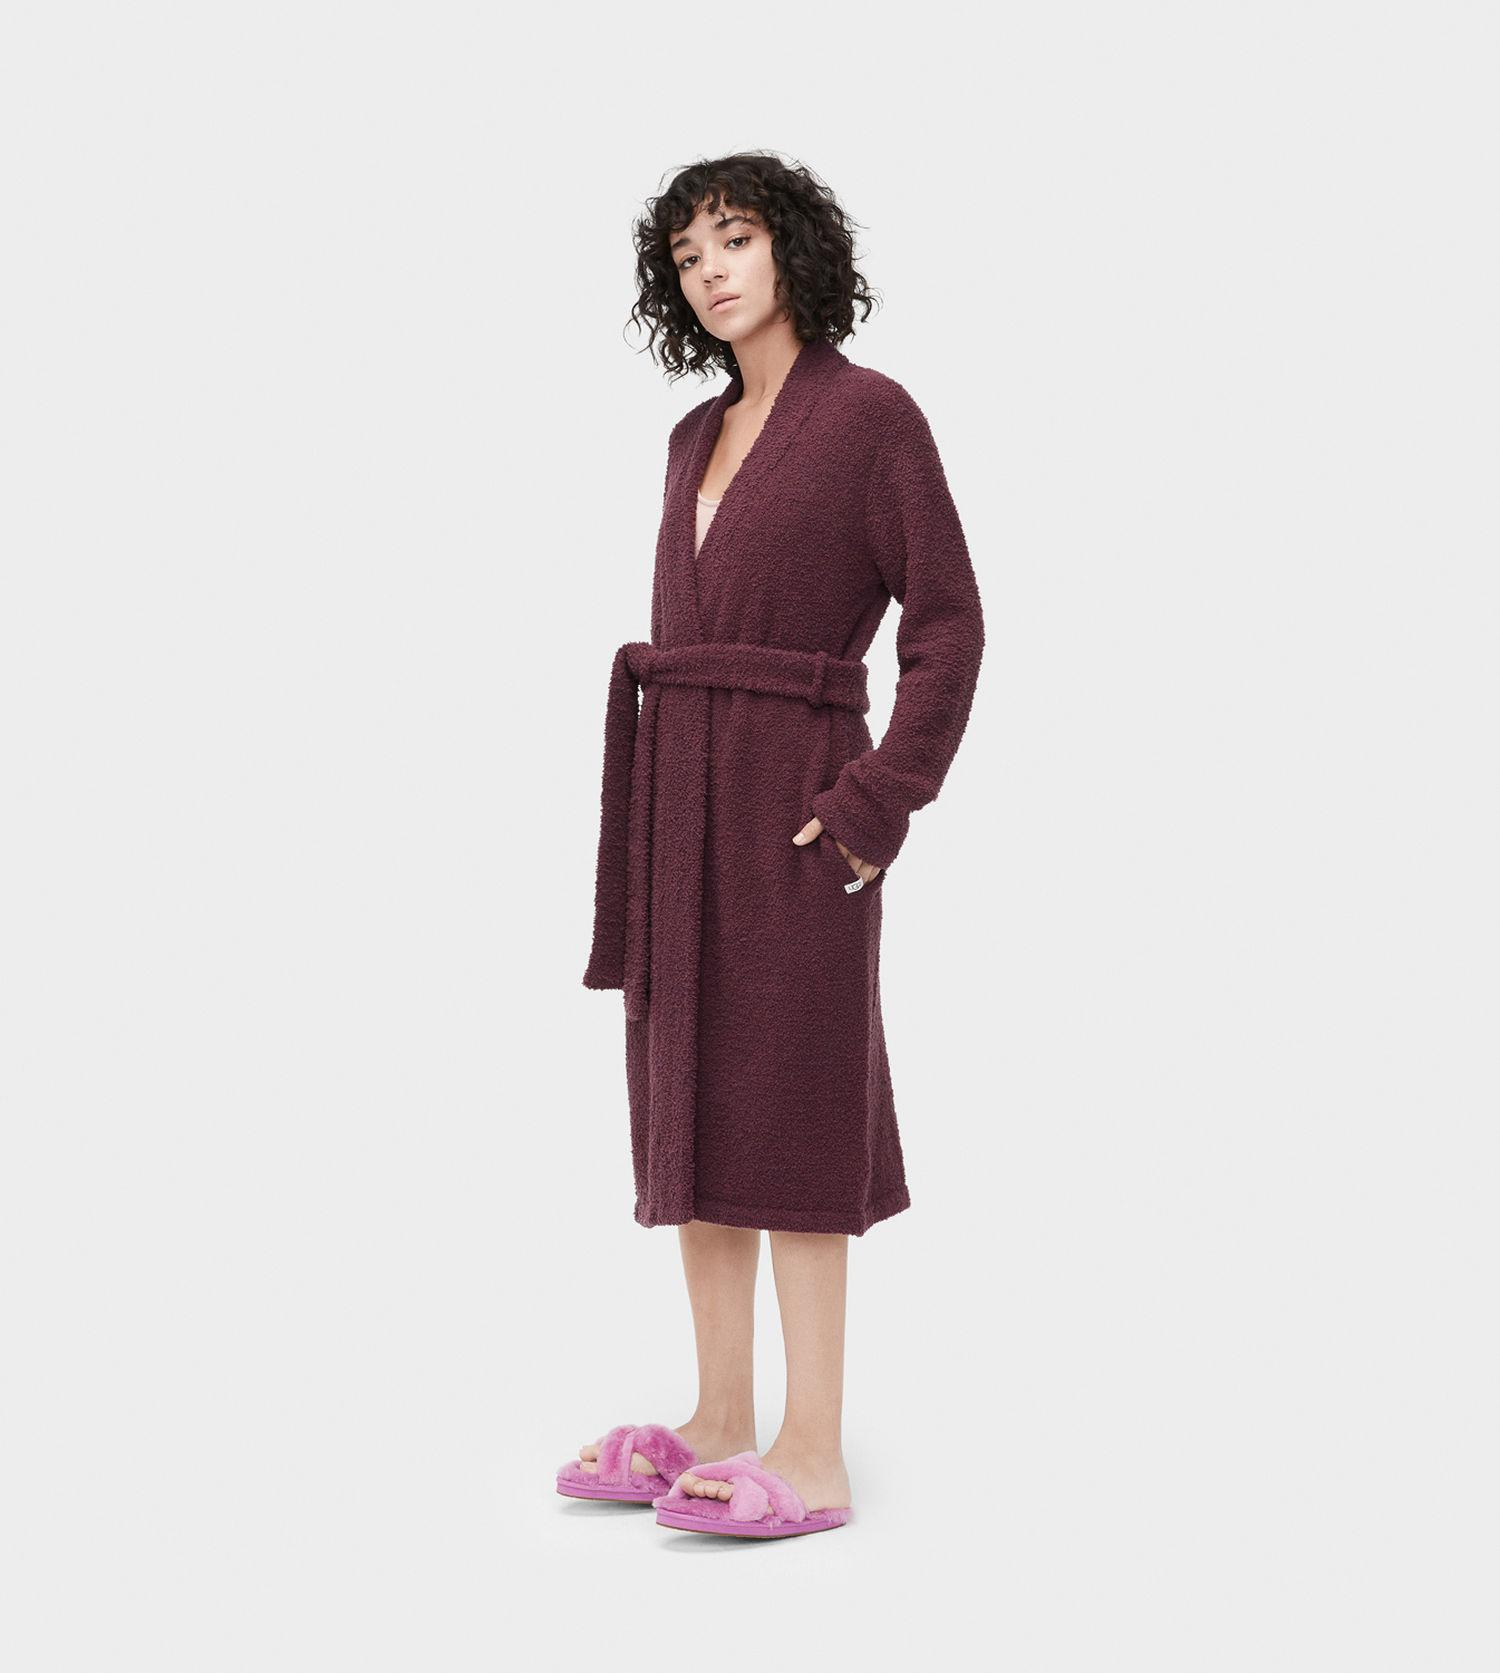 80c0d61a46 Lyst - Ugg Women s Ana Robe in Red